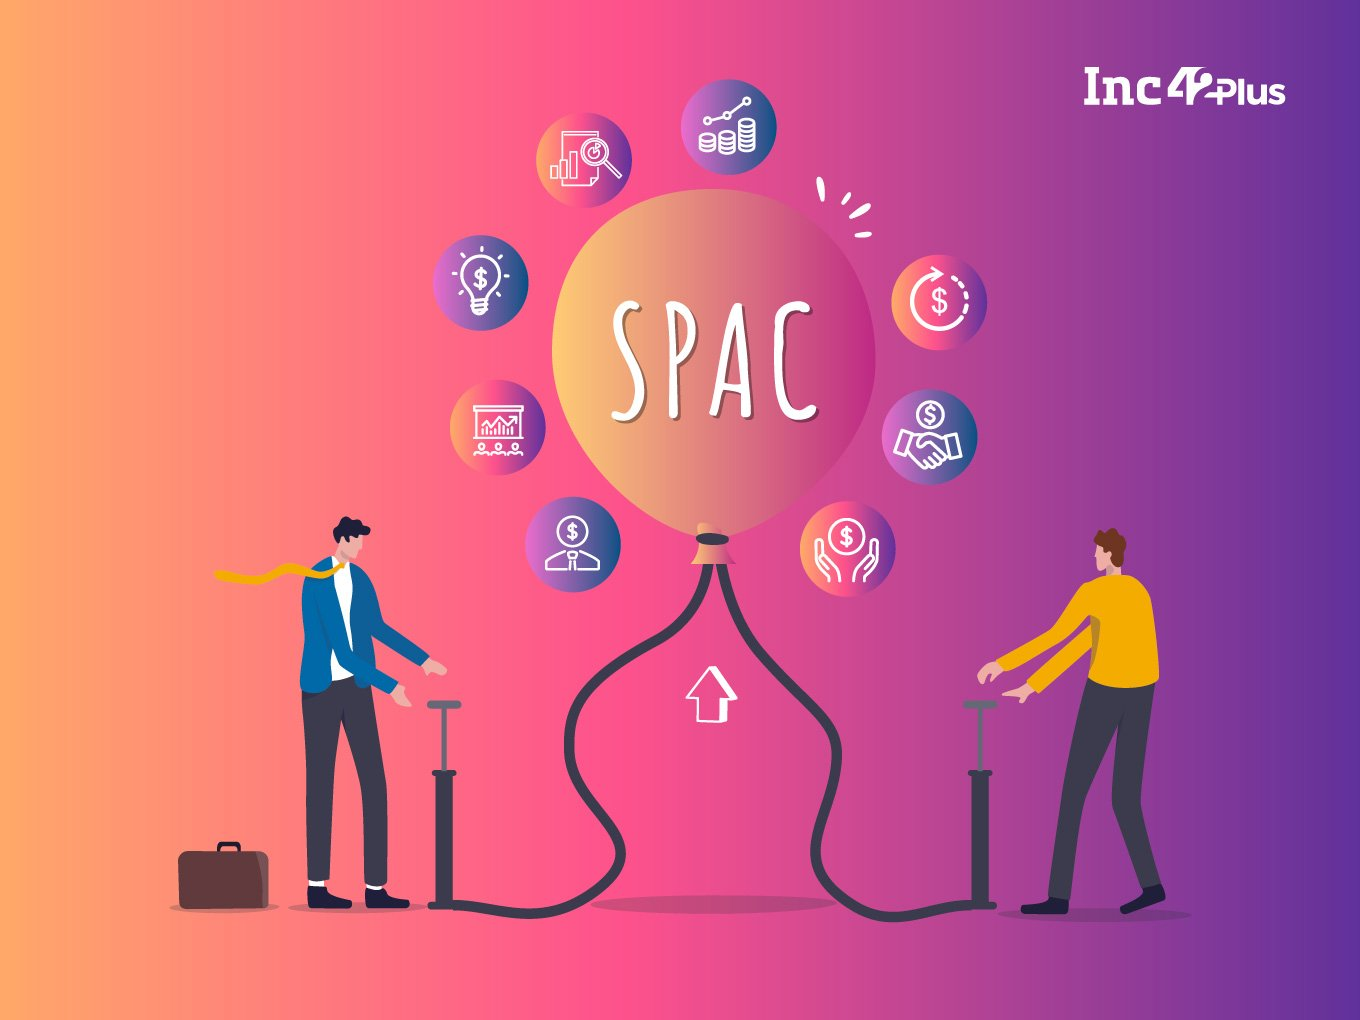 [The Outline By Inc42 Plus] Indian Startups' SPAC-tacular Dreams